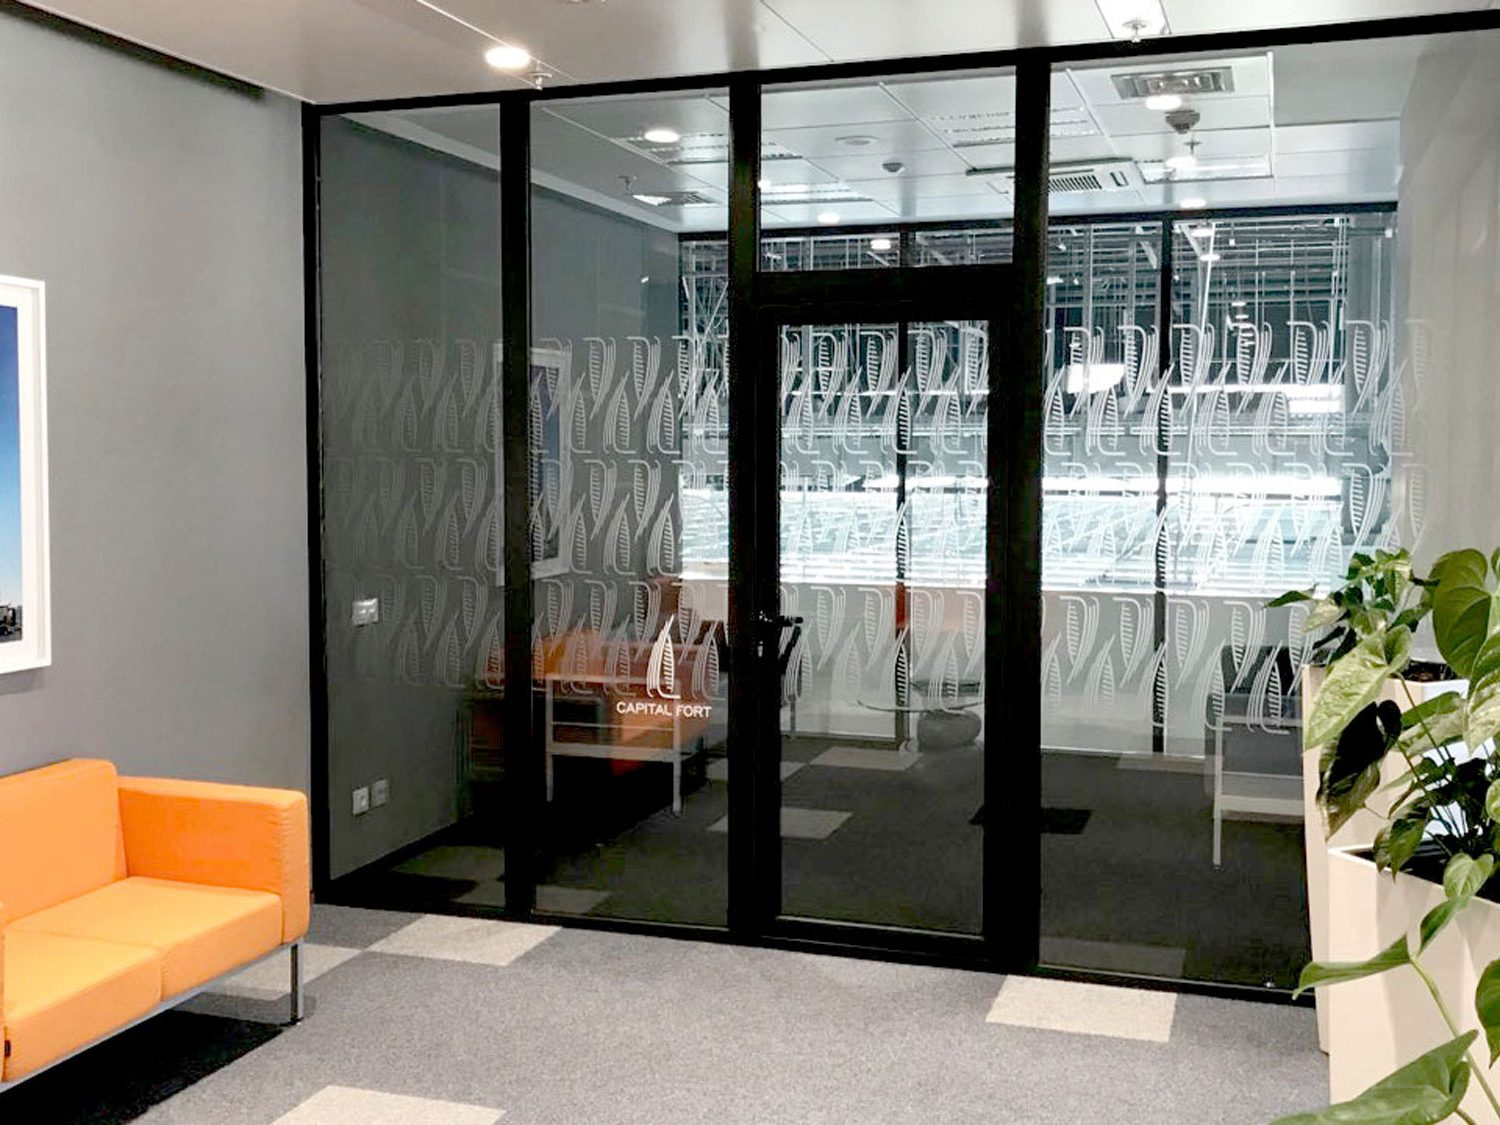 Glass wall decorated with Capital Wall logos